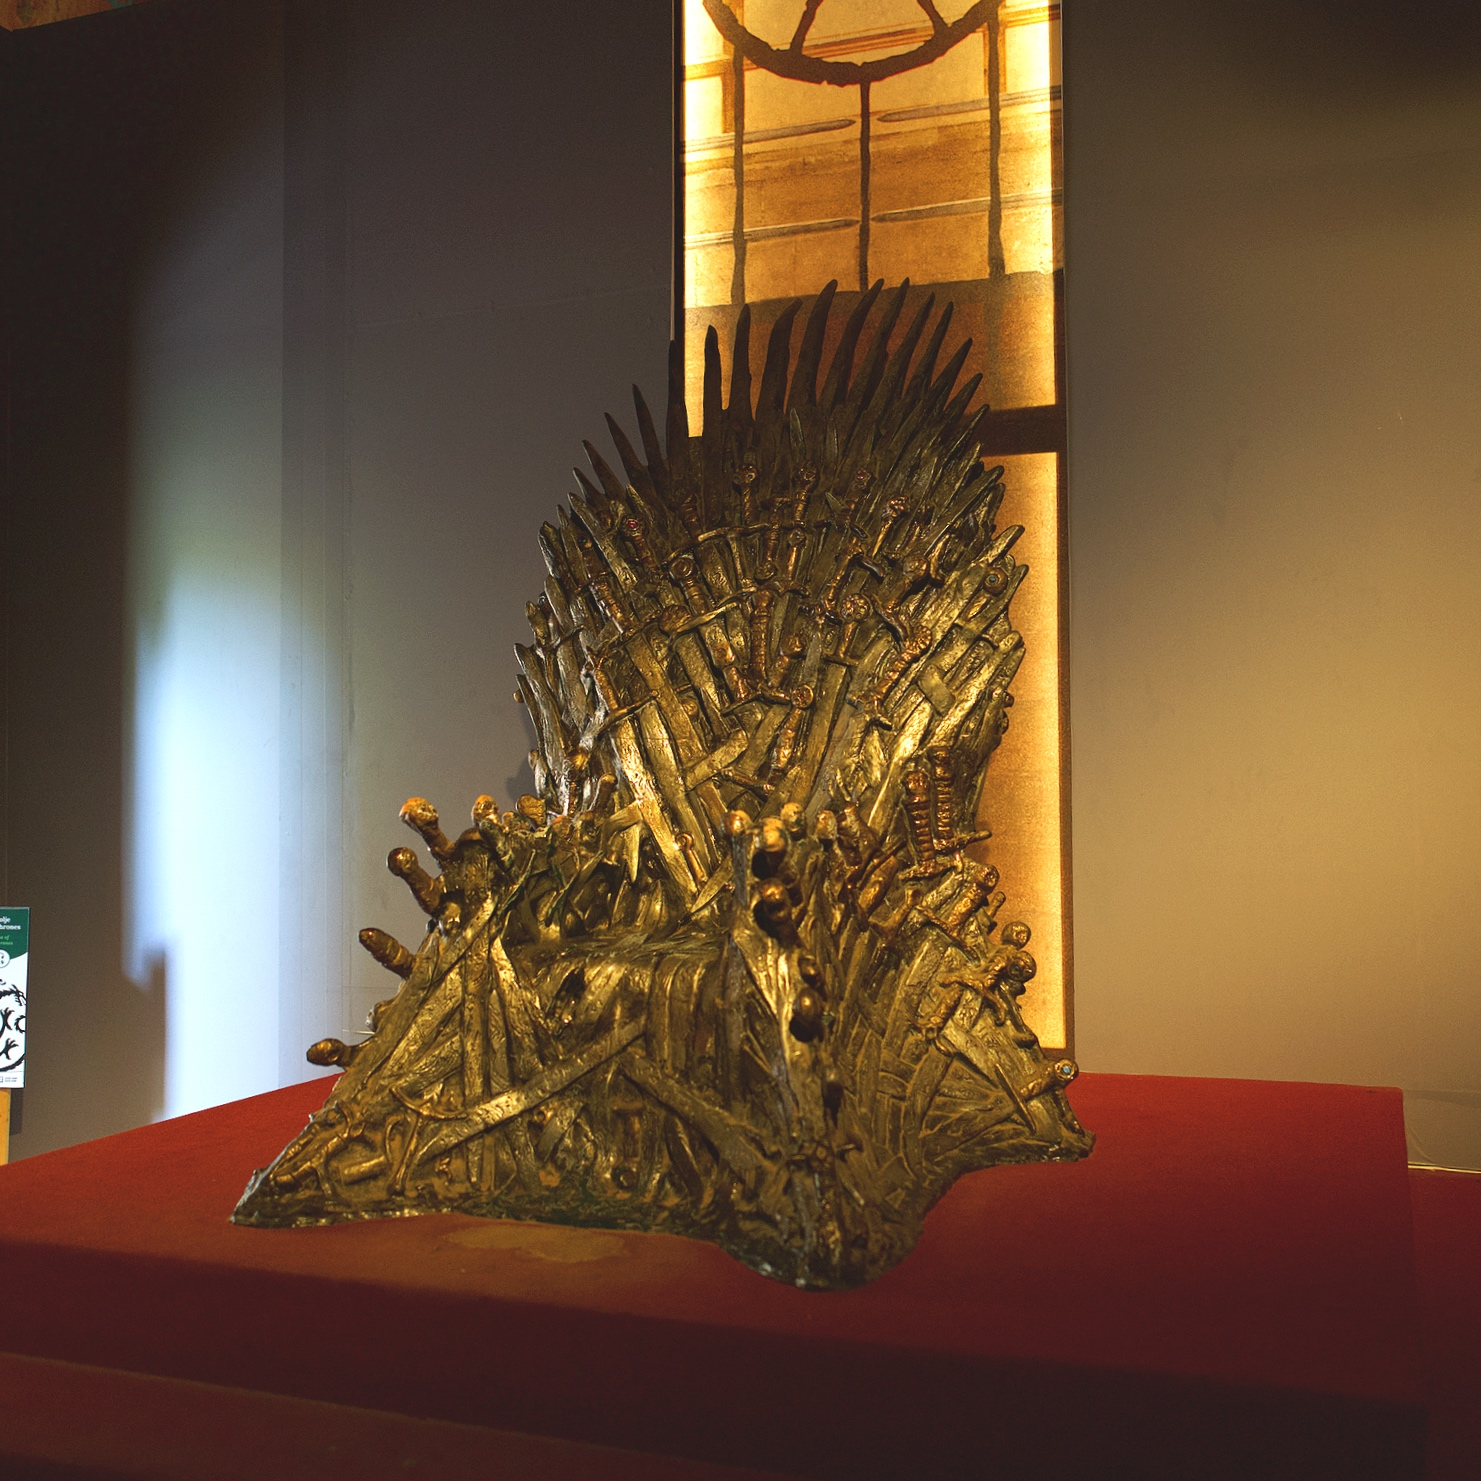 As fans of Game of Thrones we couldn't resist seeing the Iron Throne.